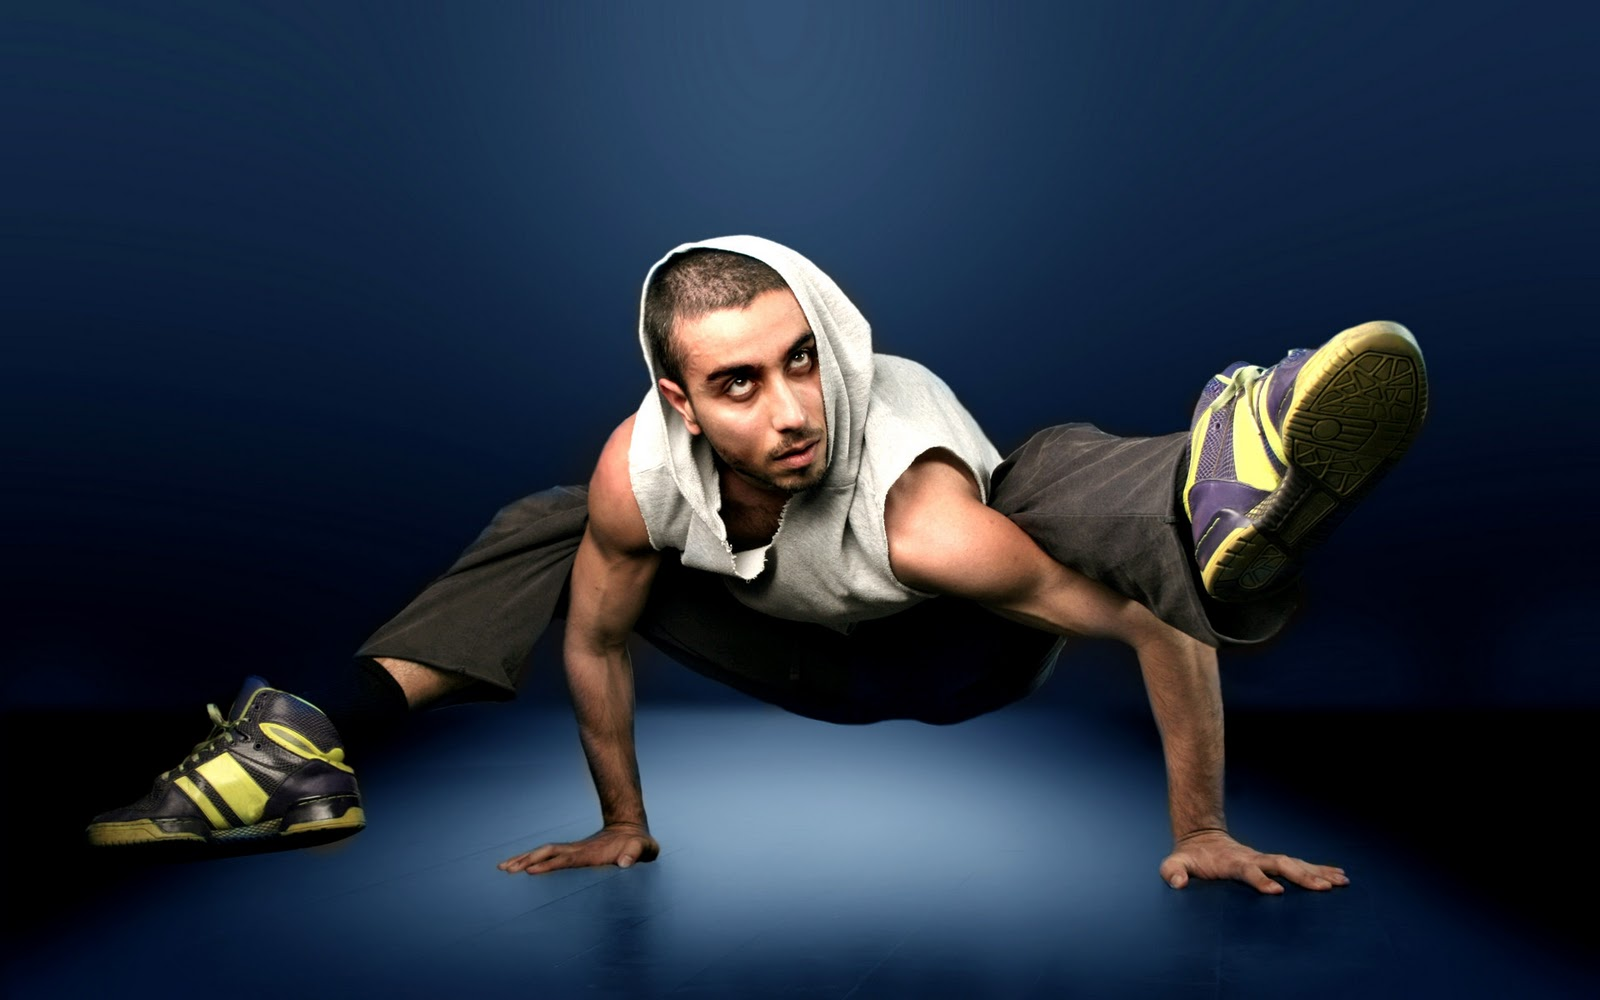 Photo And Wallpapers: hip hop styles wallpapers,hip hop wallpapers,hip hop wallpaper,hip hop ...